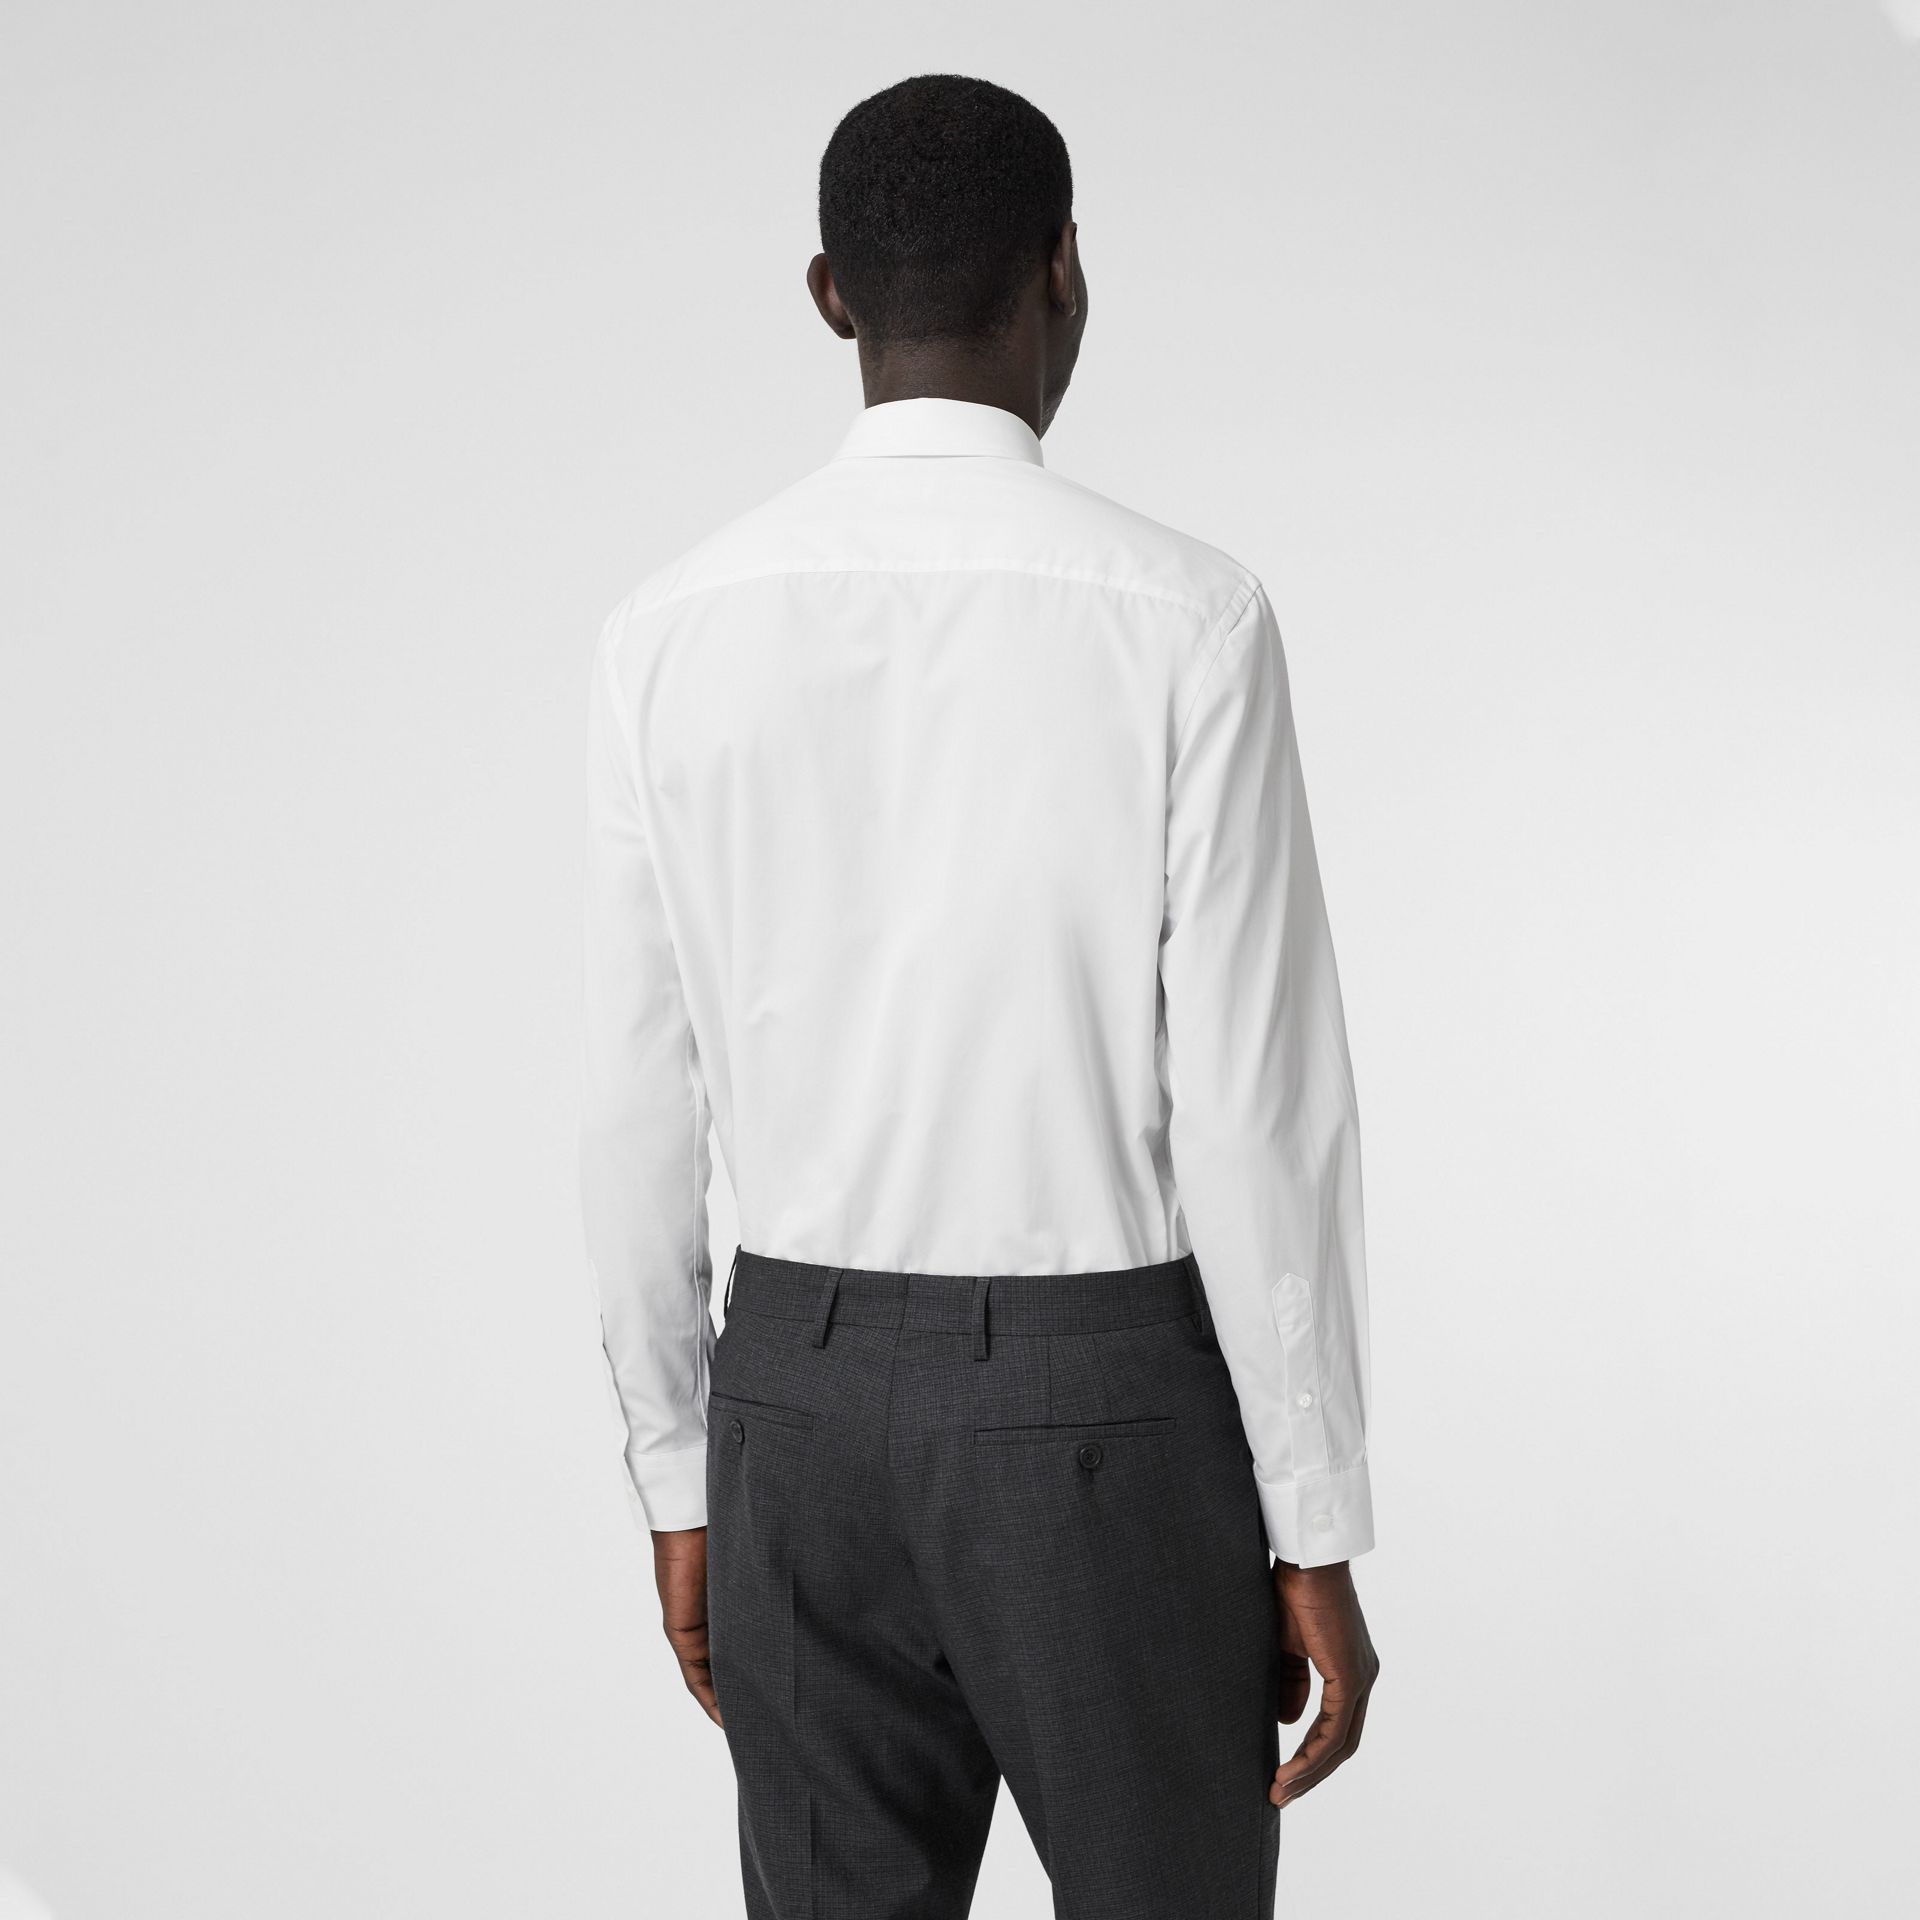 Classic Fit Monogram Motif Cotton Poplin Shirt in White - Men | Burberry United Kingdom - gallery image 2